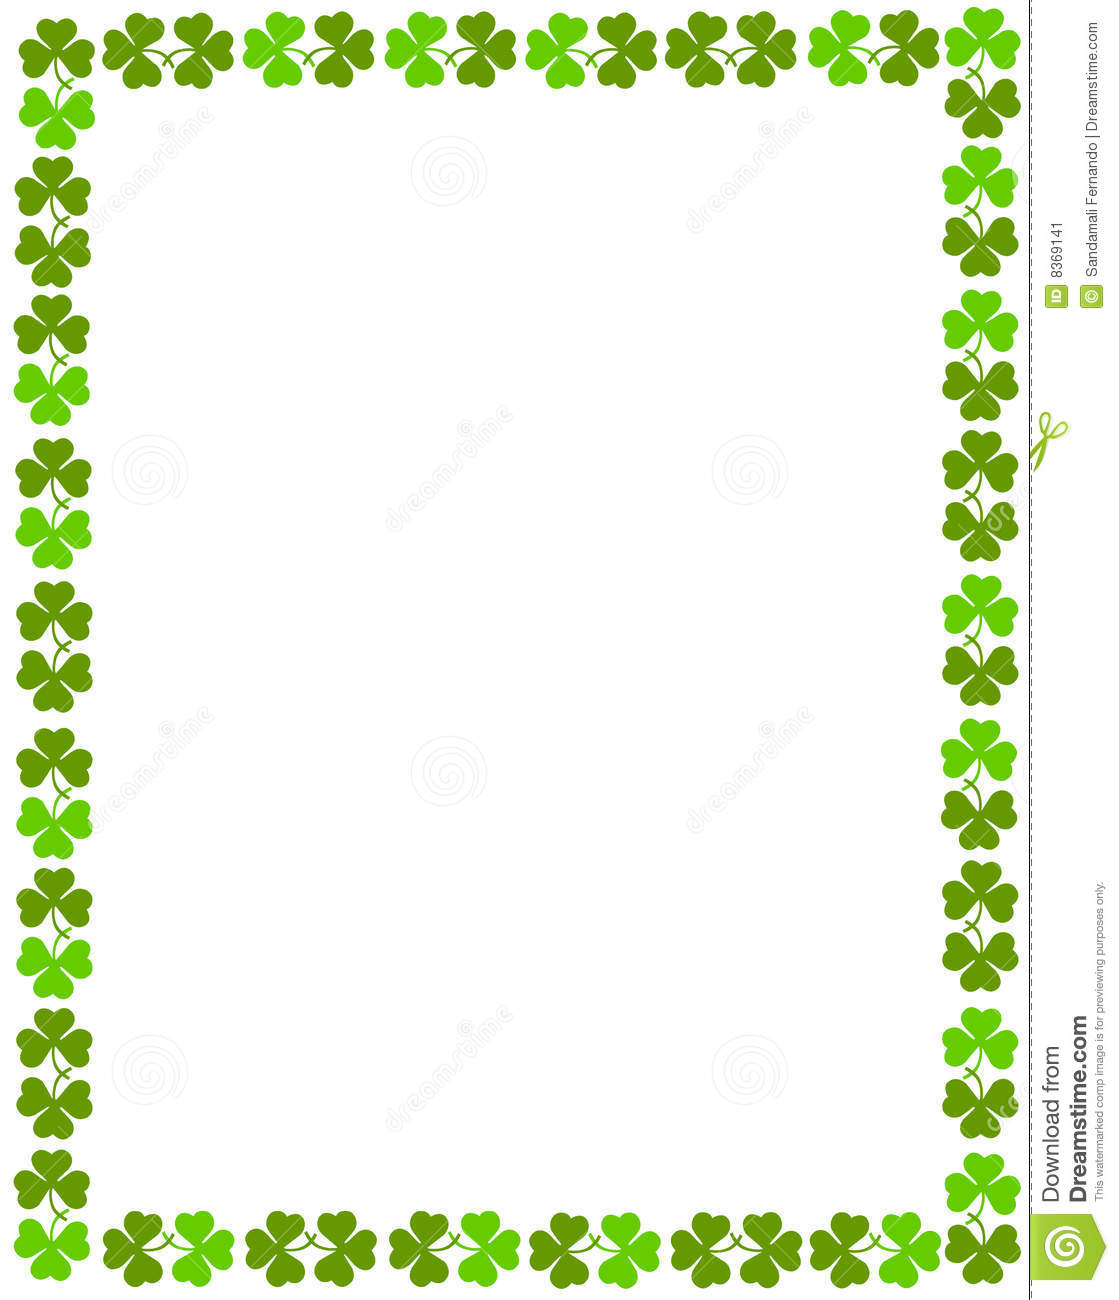 Four leaf cloves / shamrock border for st, patrick's day designs.